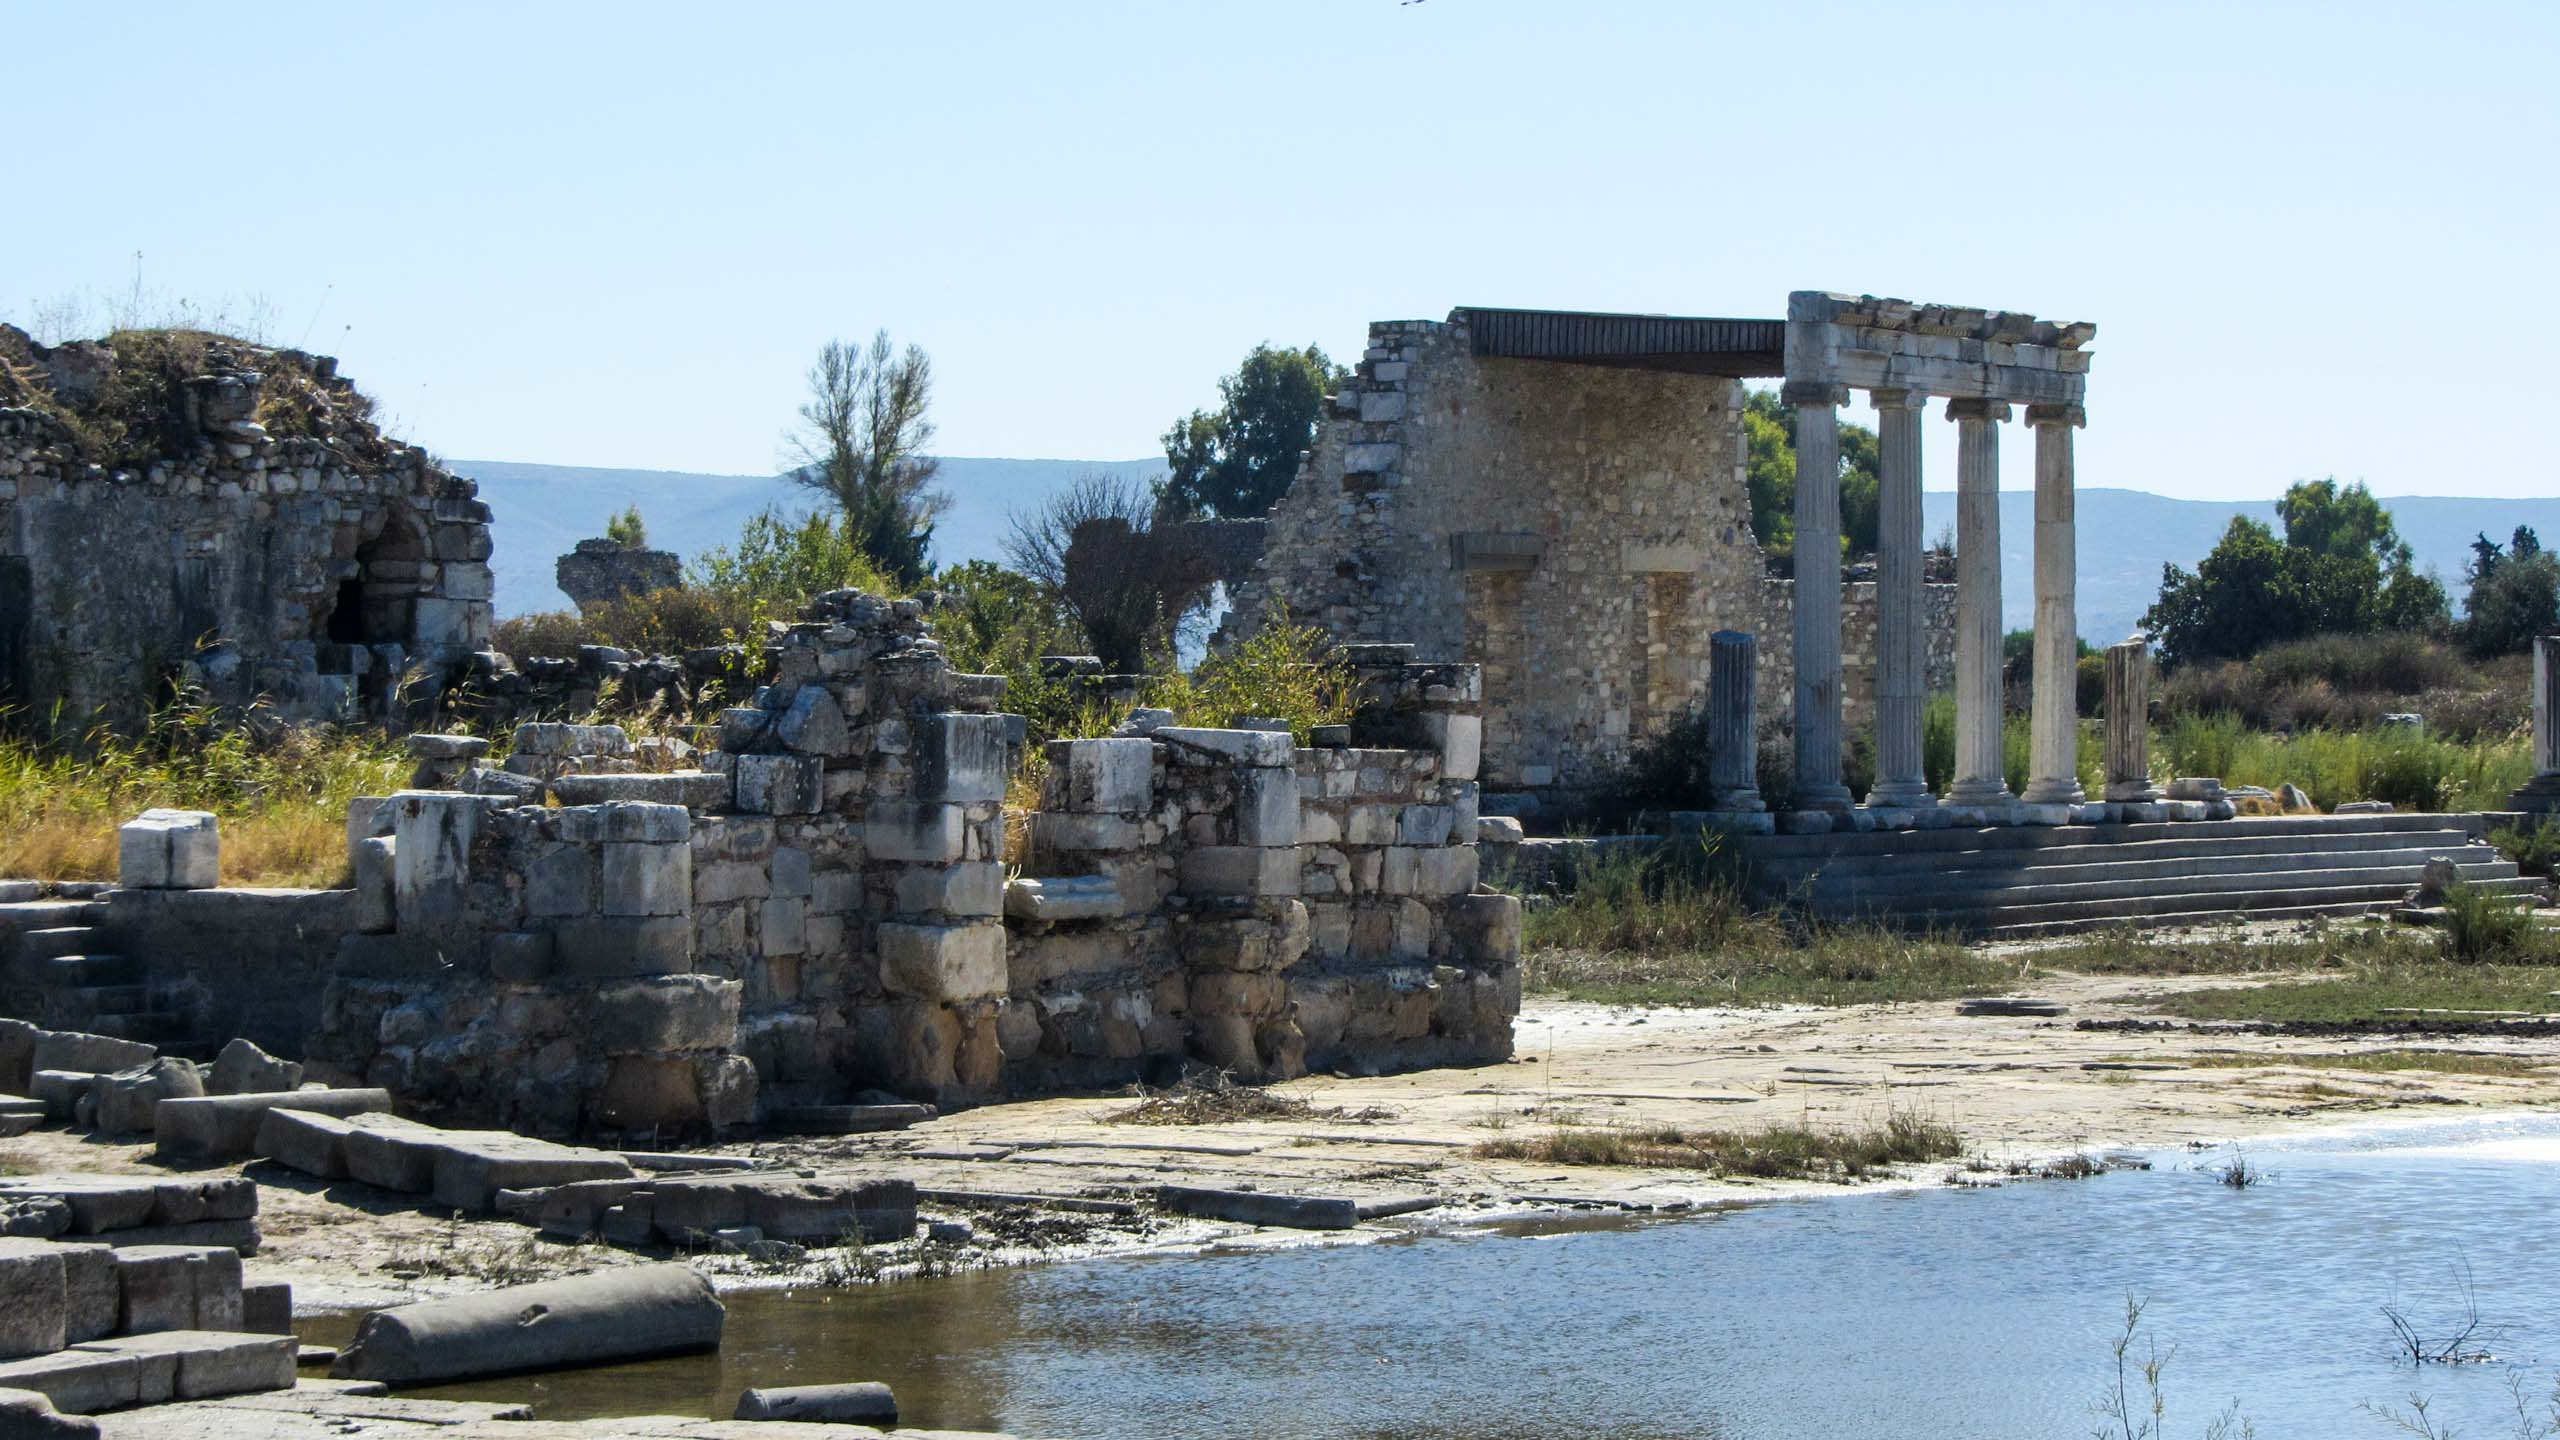 View of ruins in Turkey